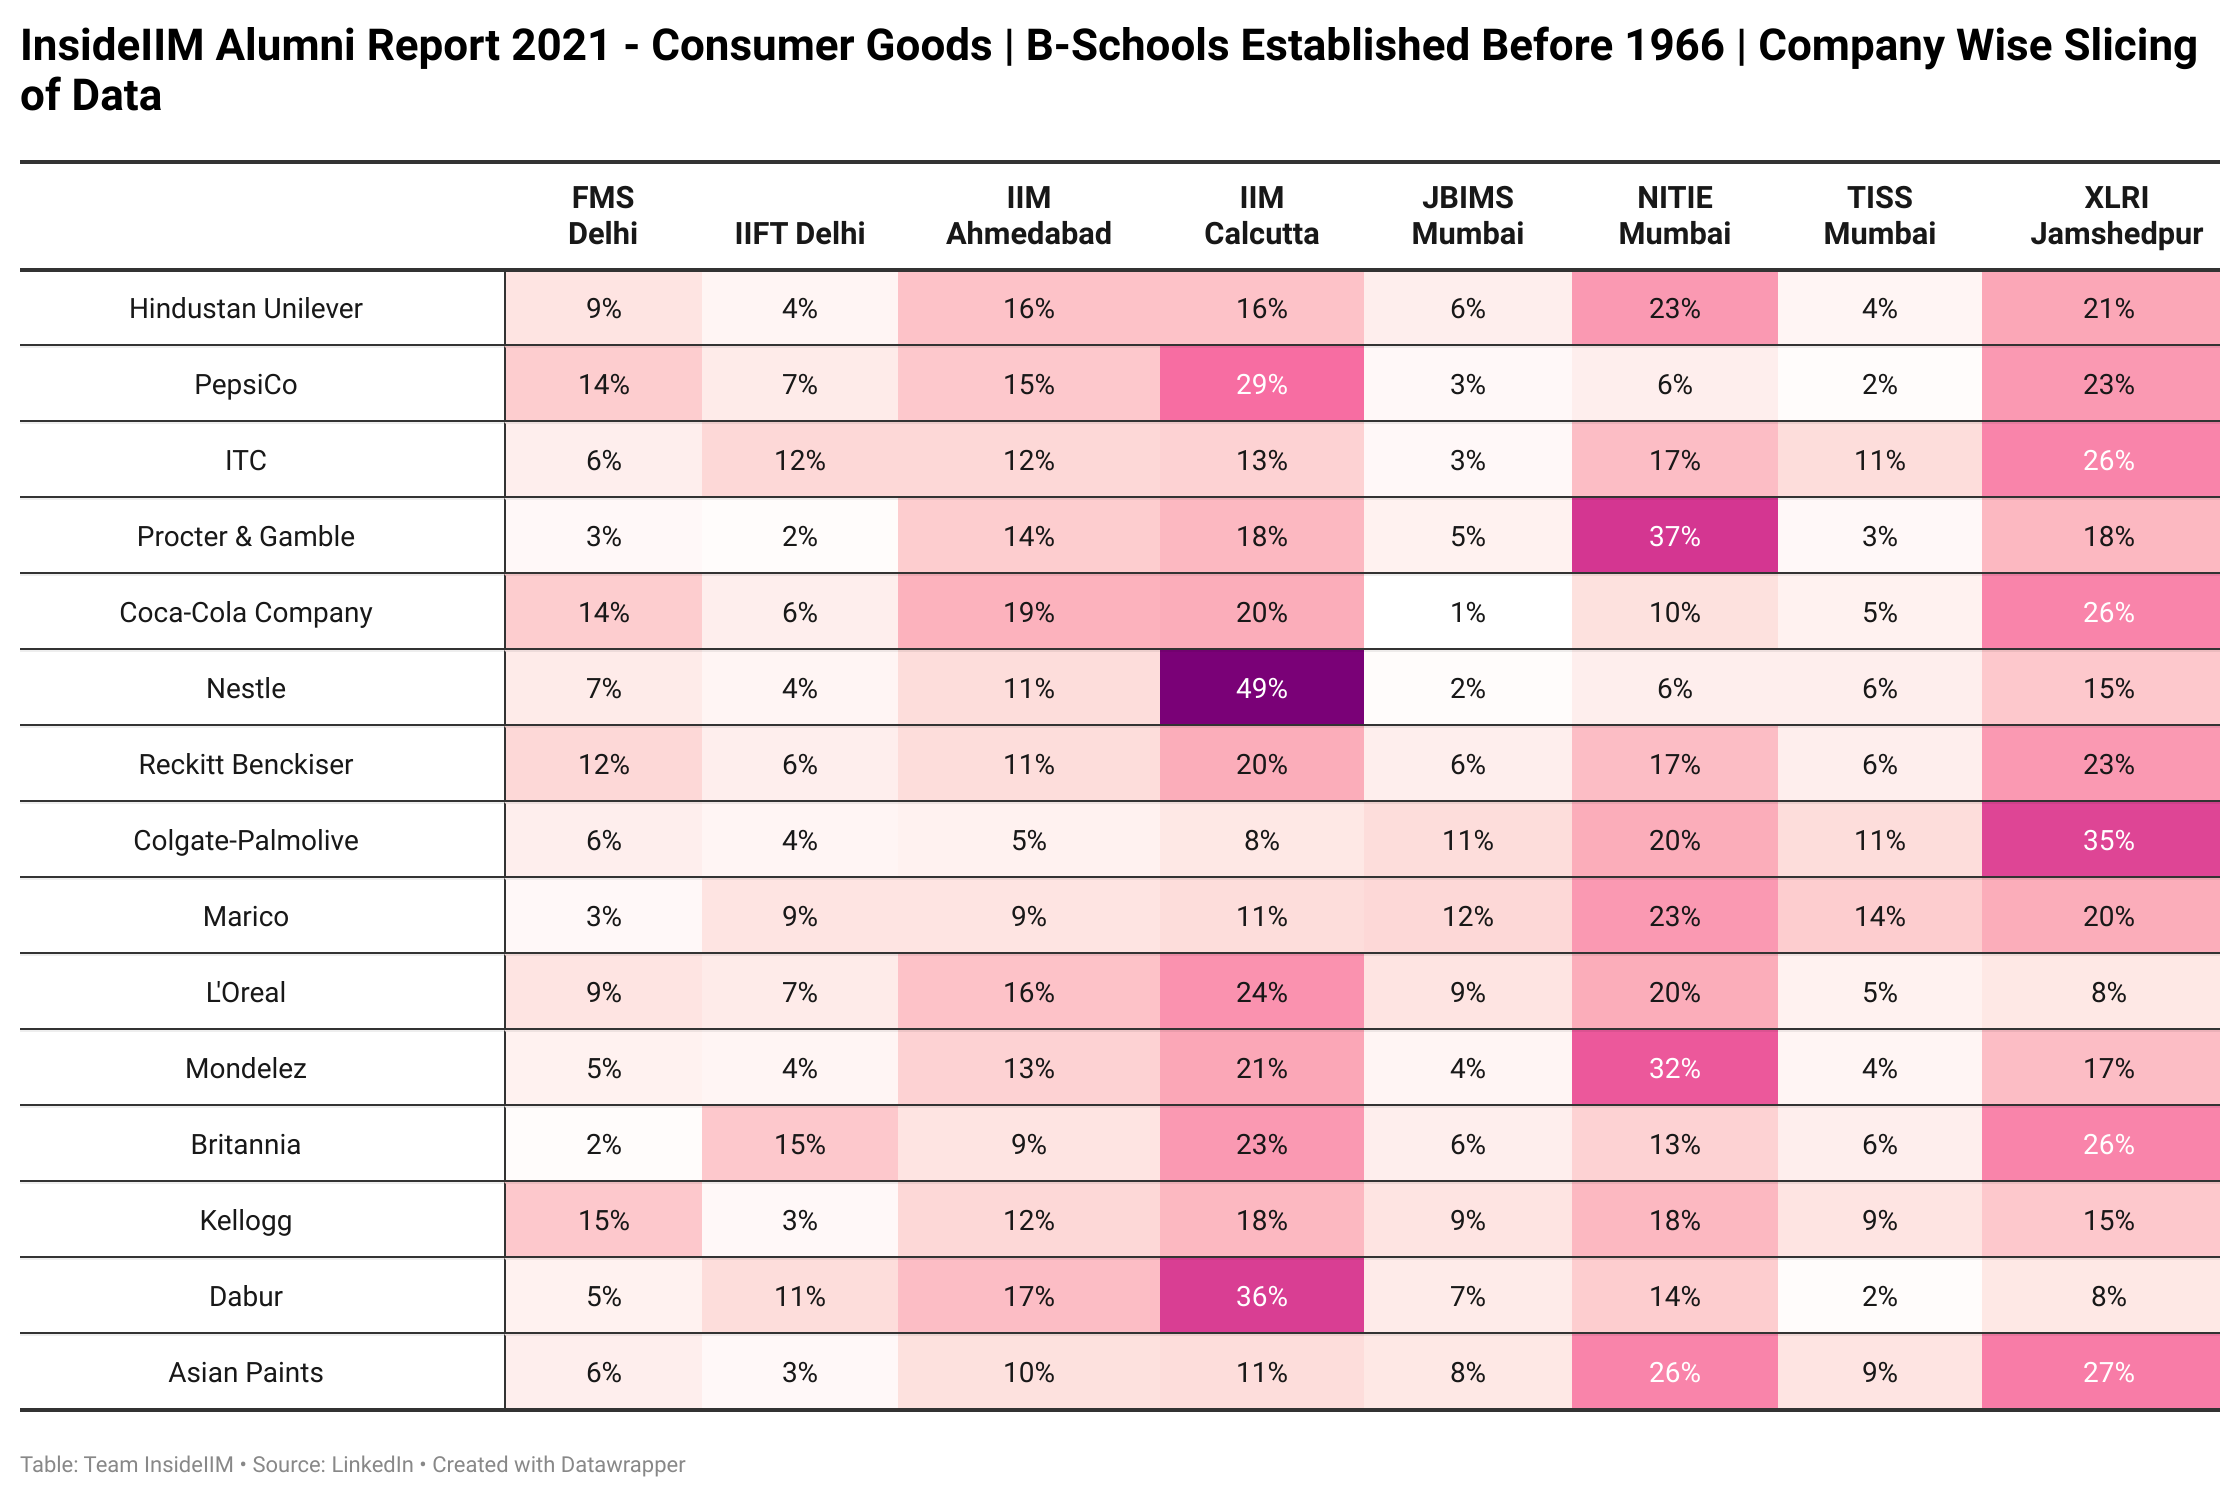 Which FMCG Companies Are Alumni of Top B-Schools Working At  - Established Before 1966 | Company Wise Segregation